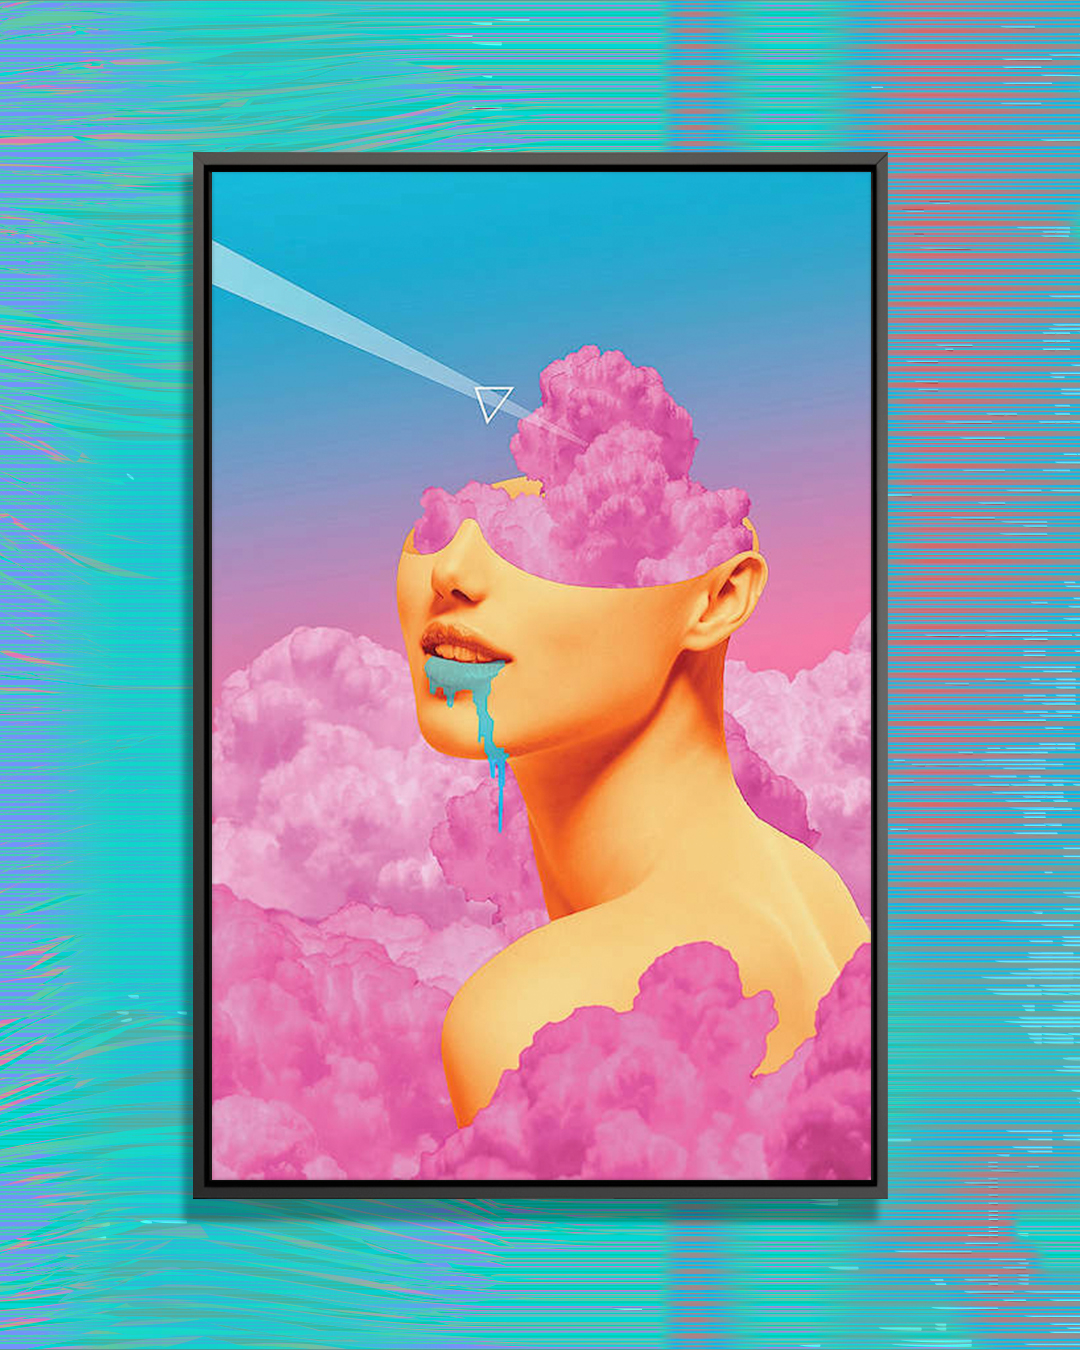 """Lucy"" by maysgrafx shows half of a human face engulfed in pink clouds."